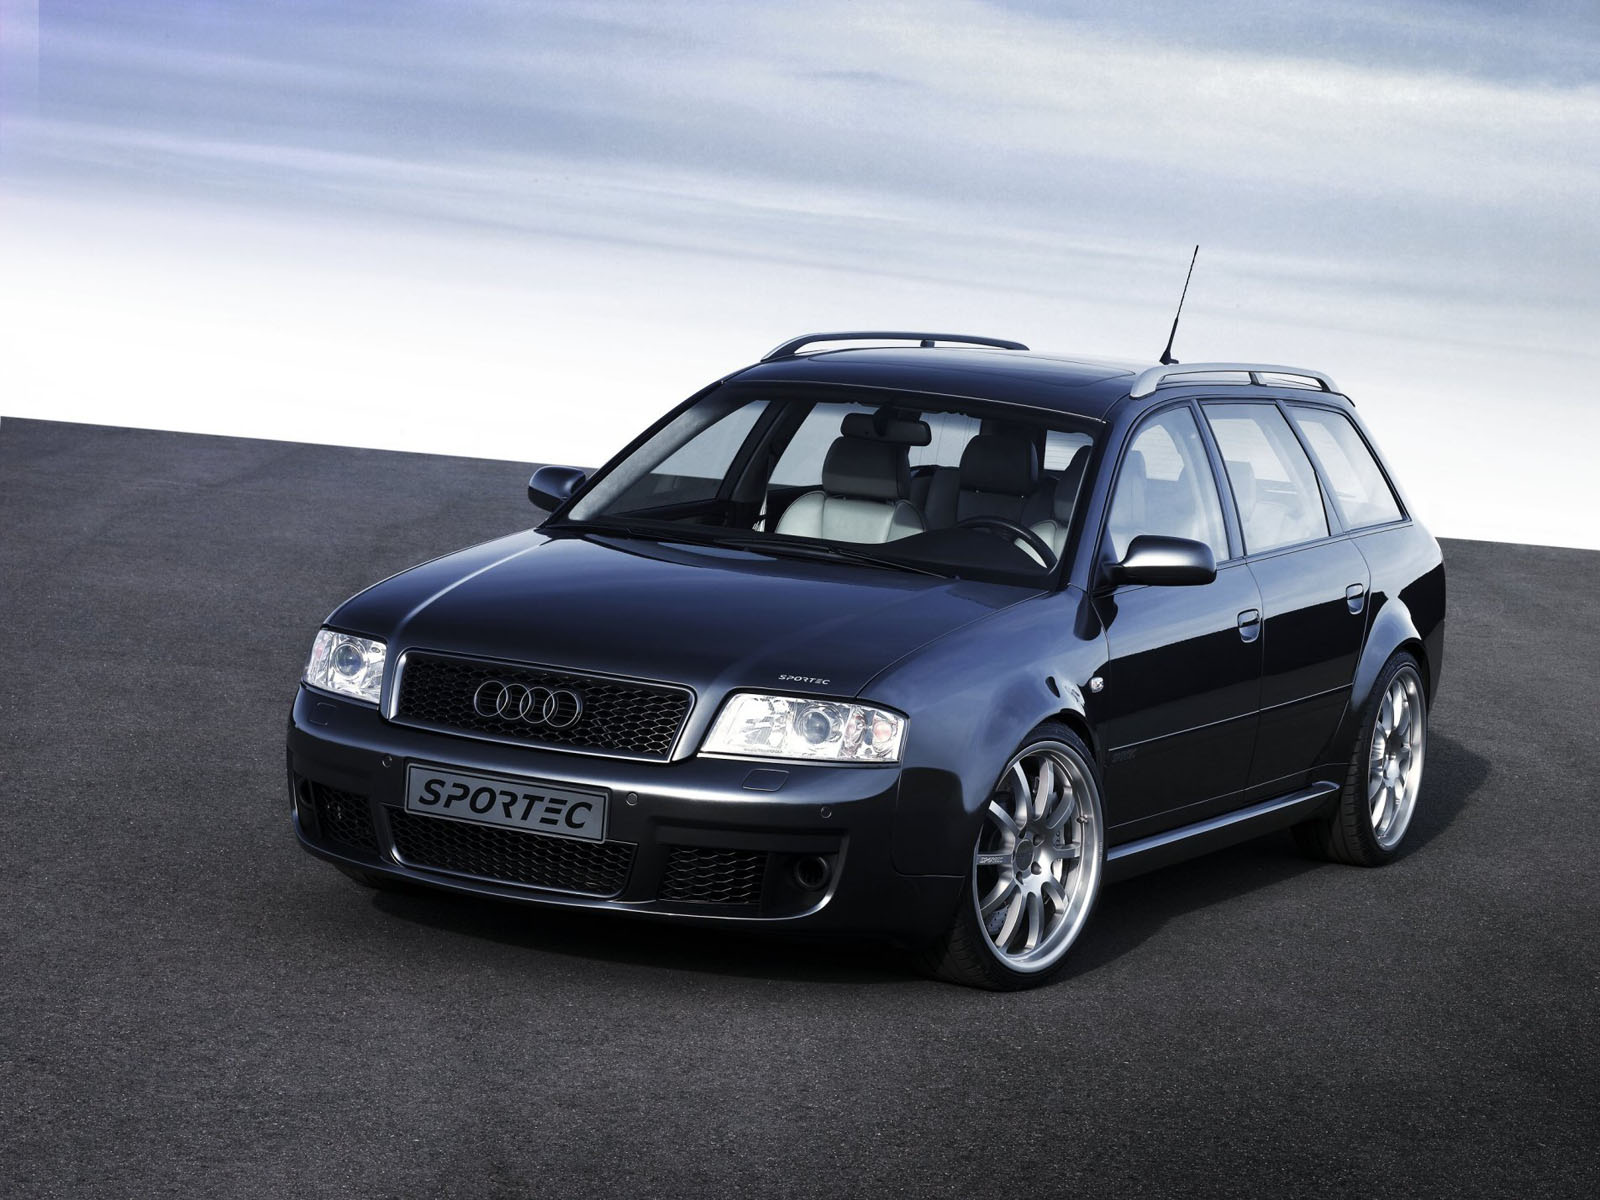 Sportec Audi Rs6 Avant Rs550 Photos Photogallery With 3